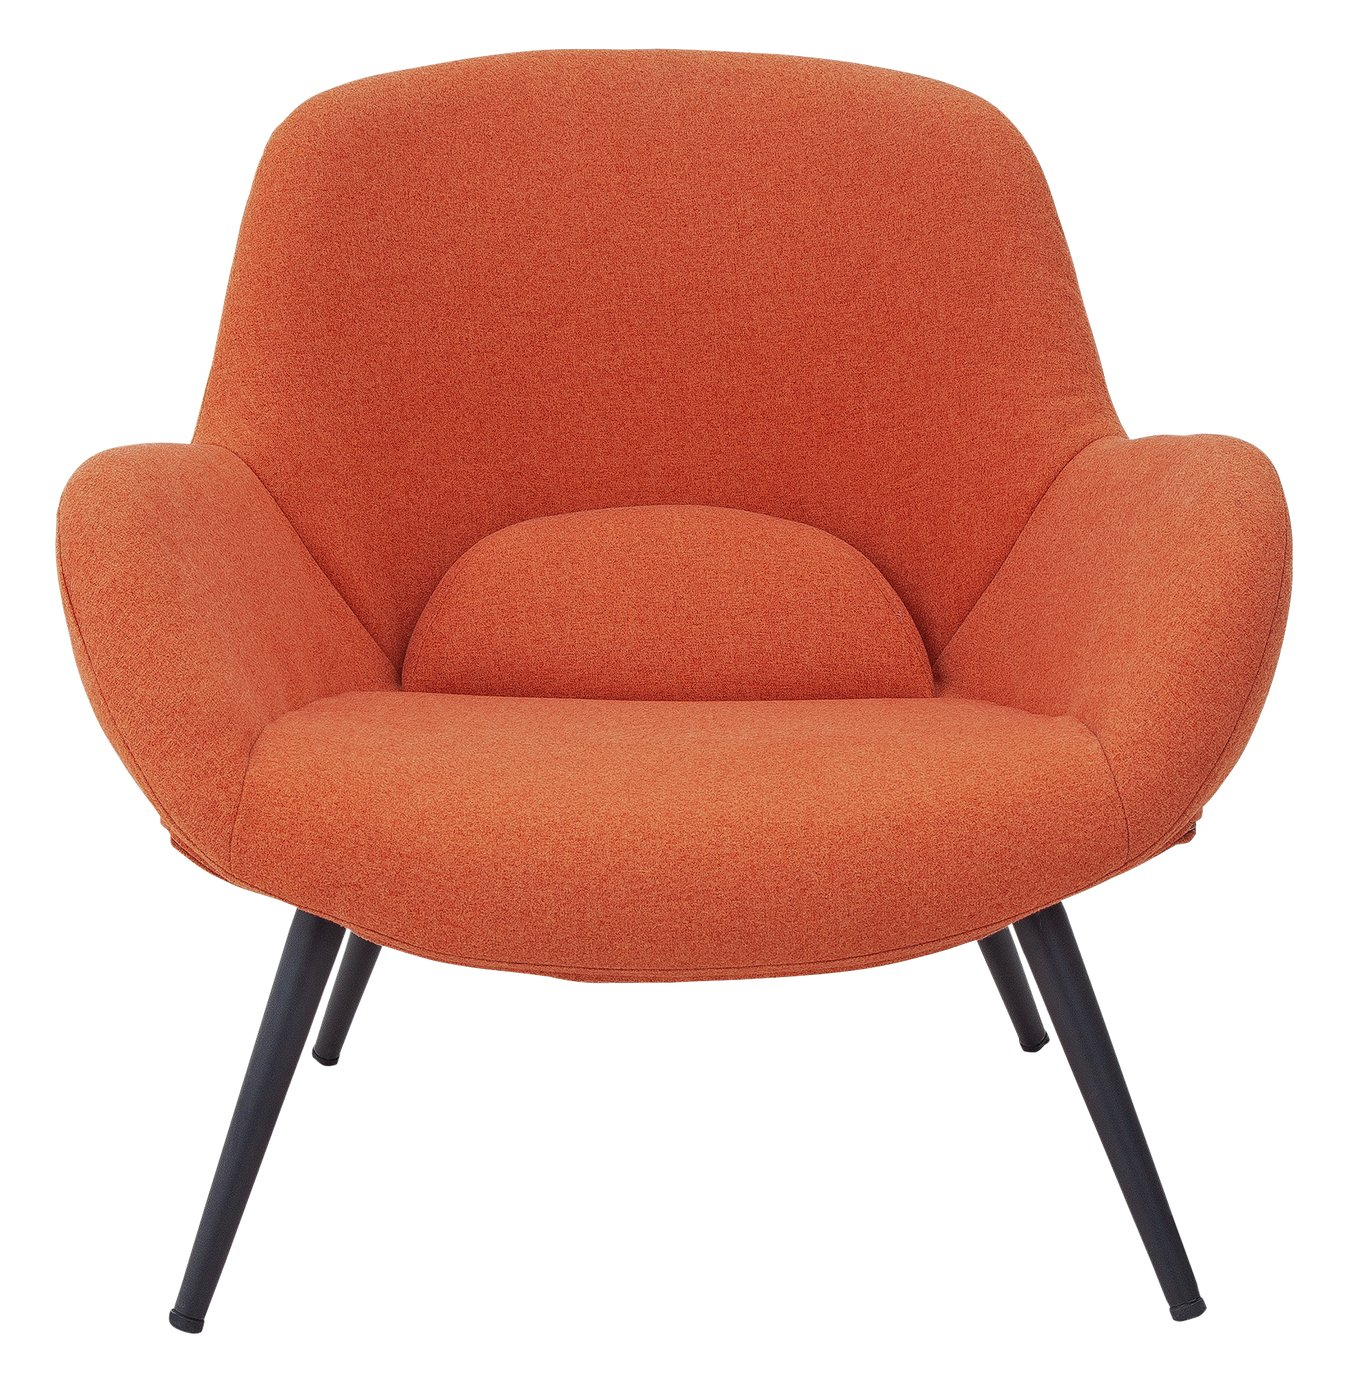 Argos Home Ollie Fabric Accent Chair - Orange